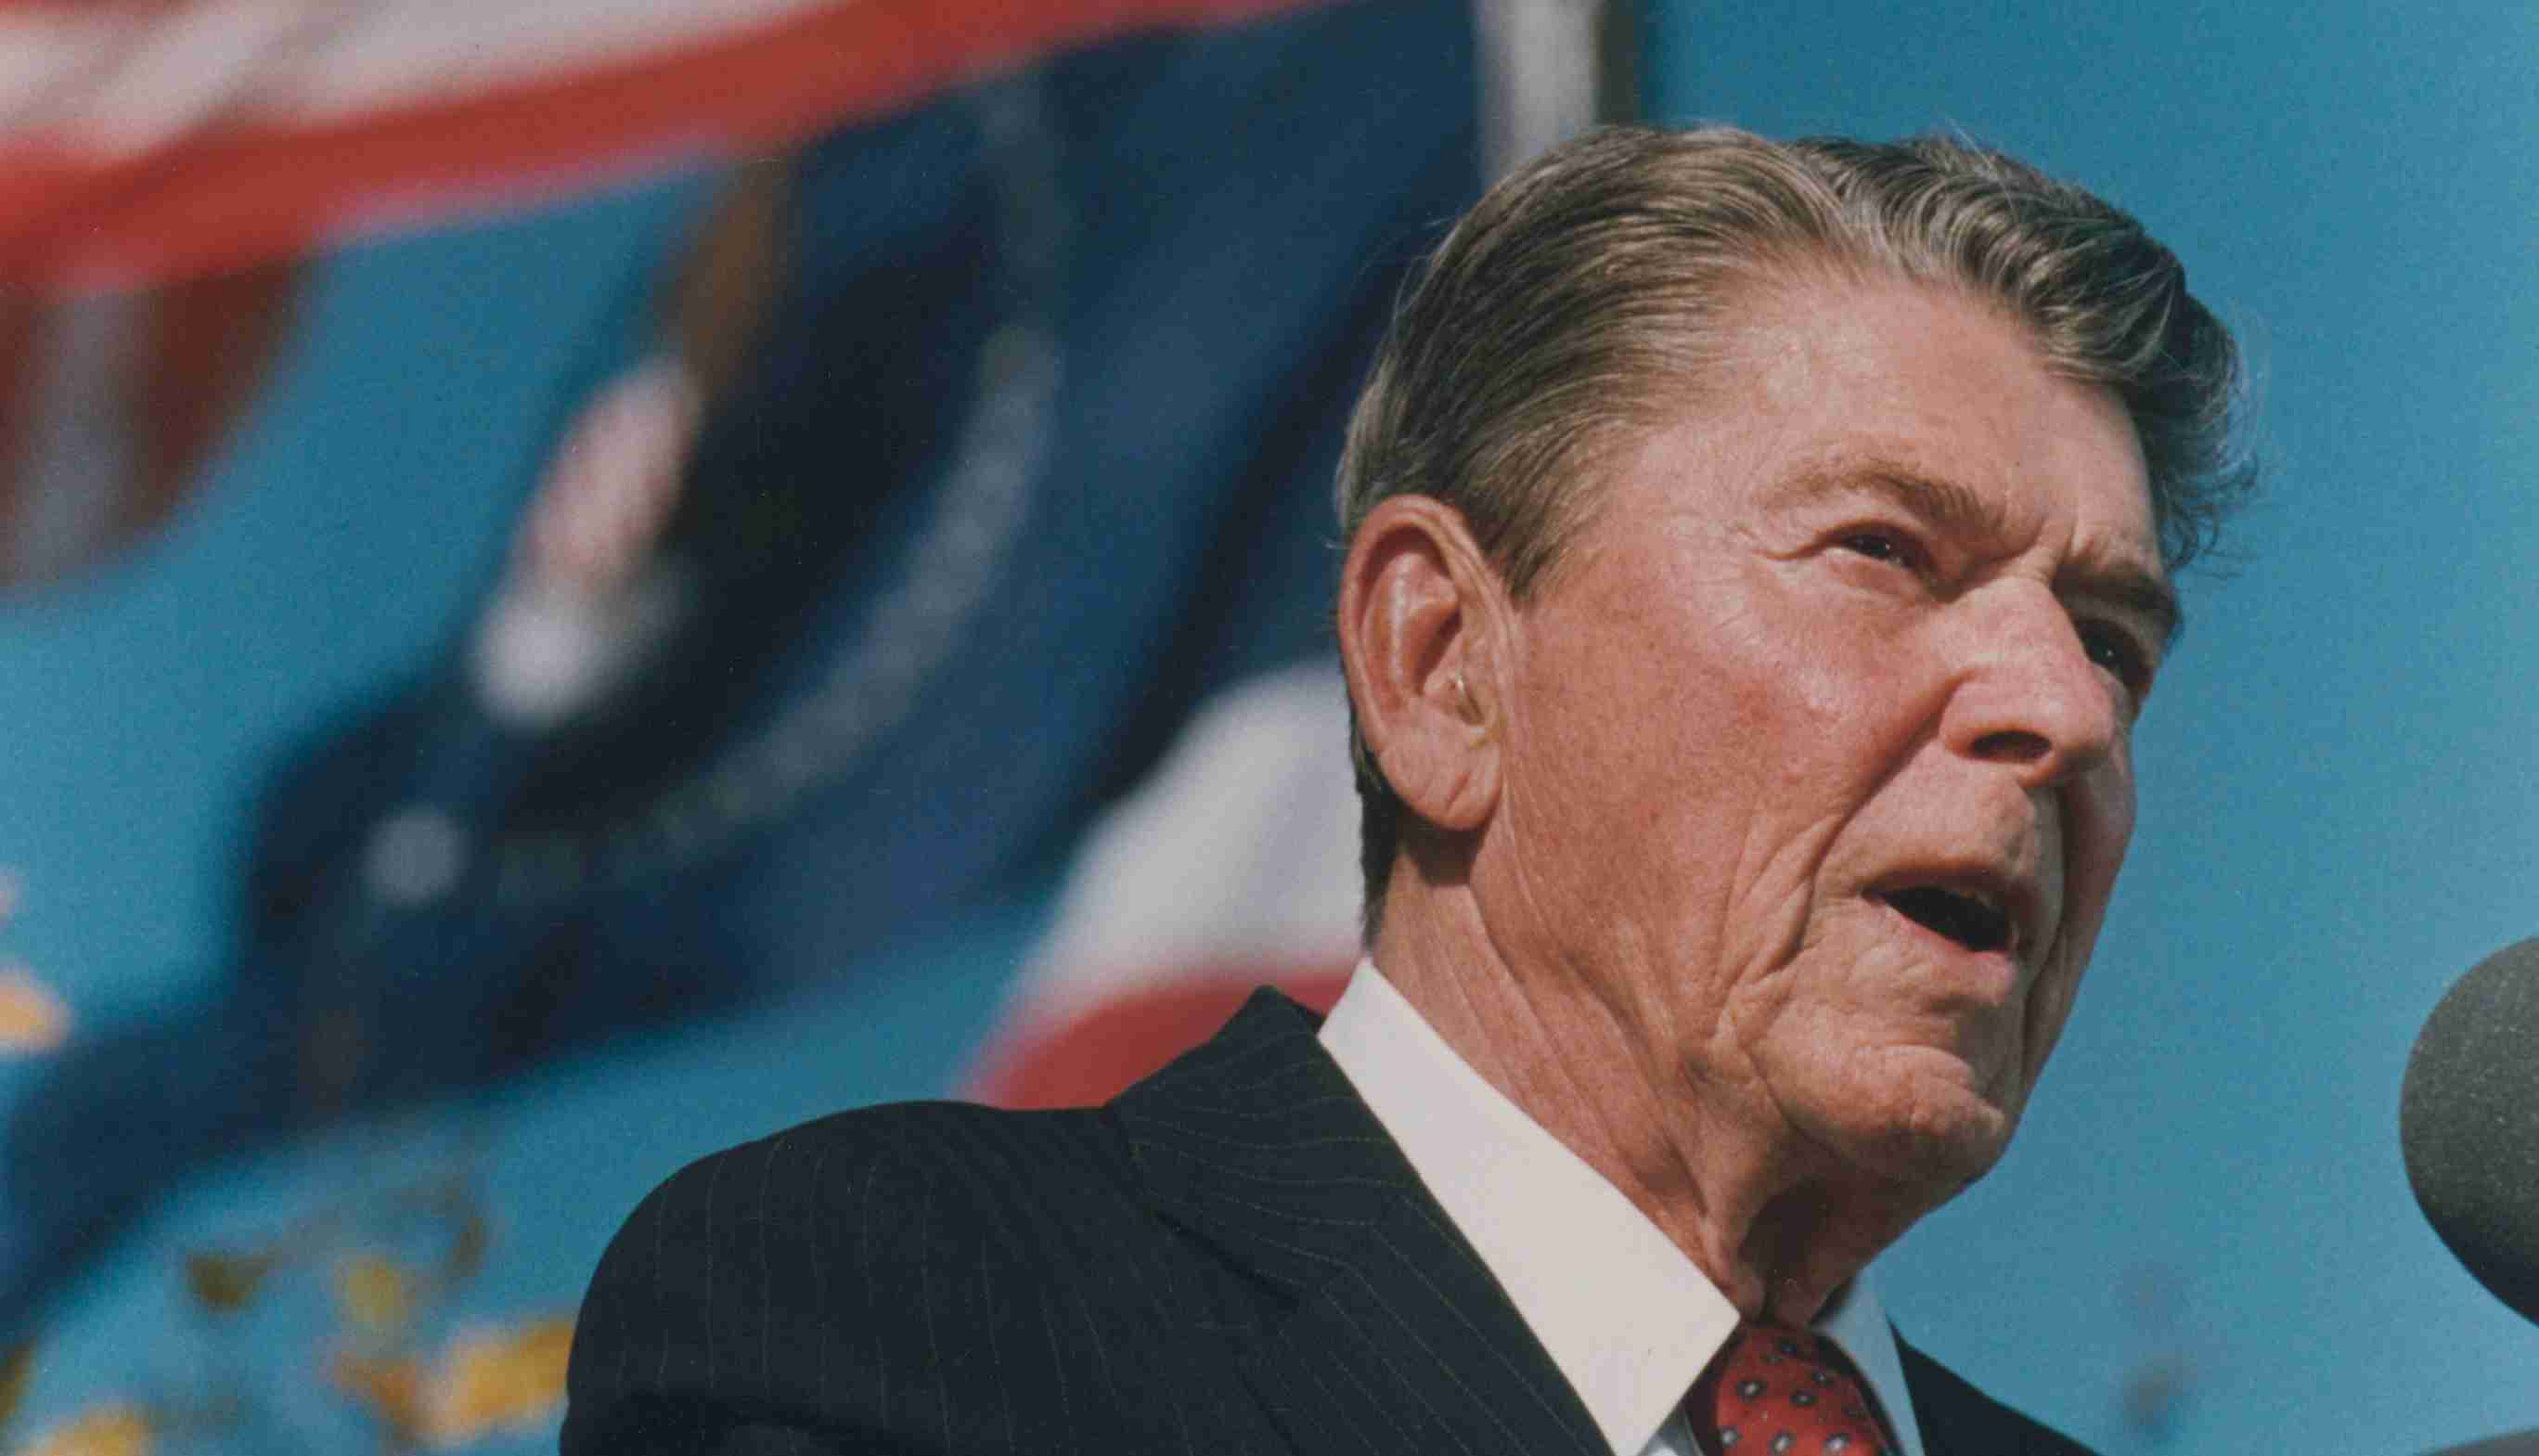 The United States flag flutters behind former President Ronald Reagan.